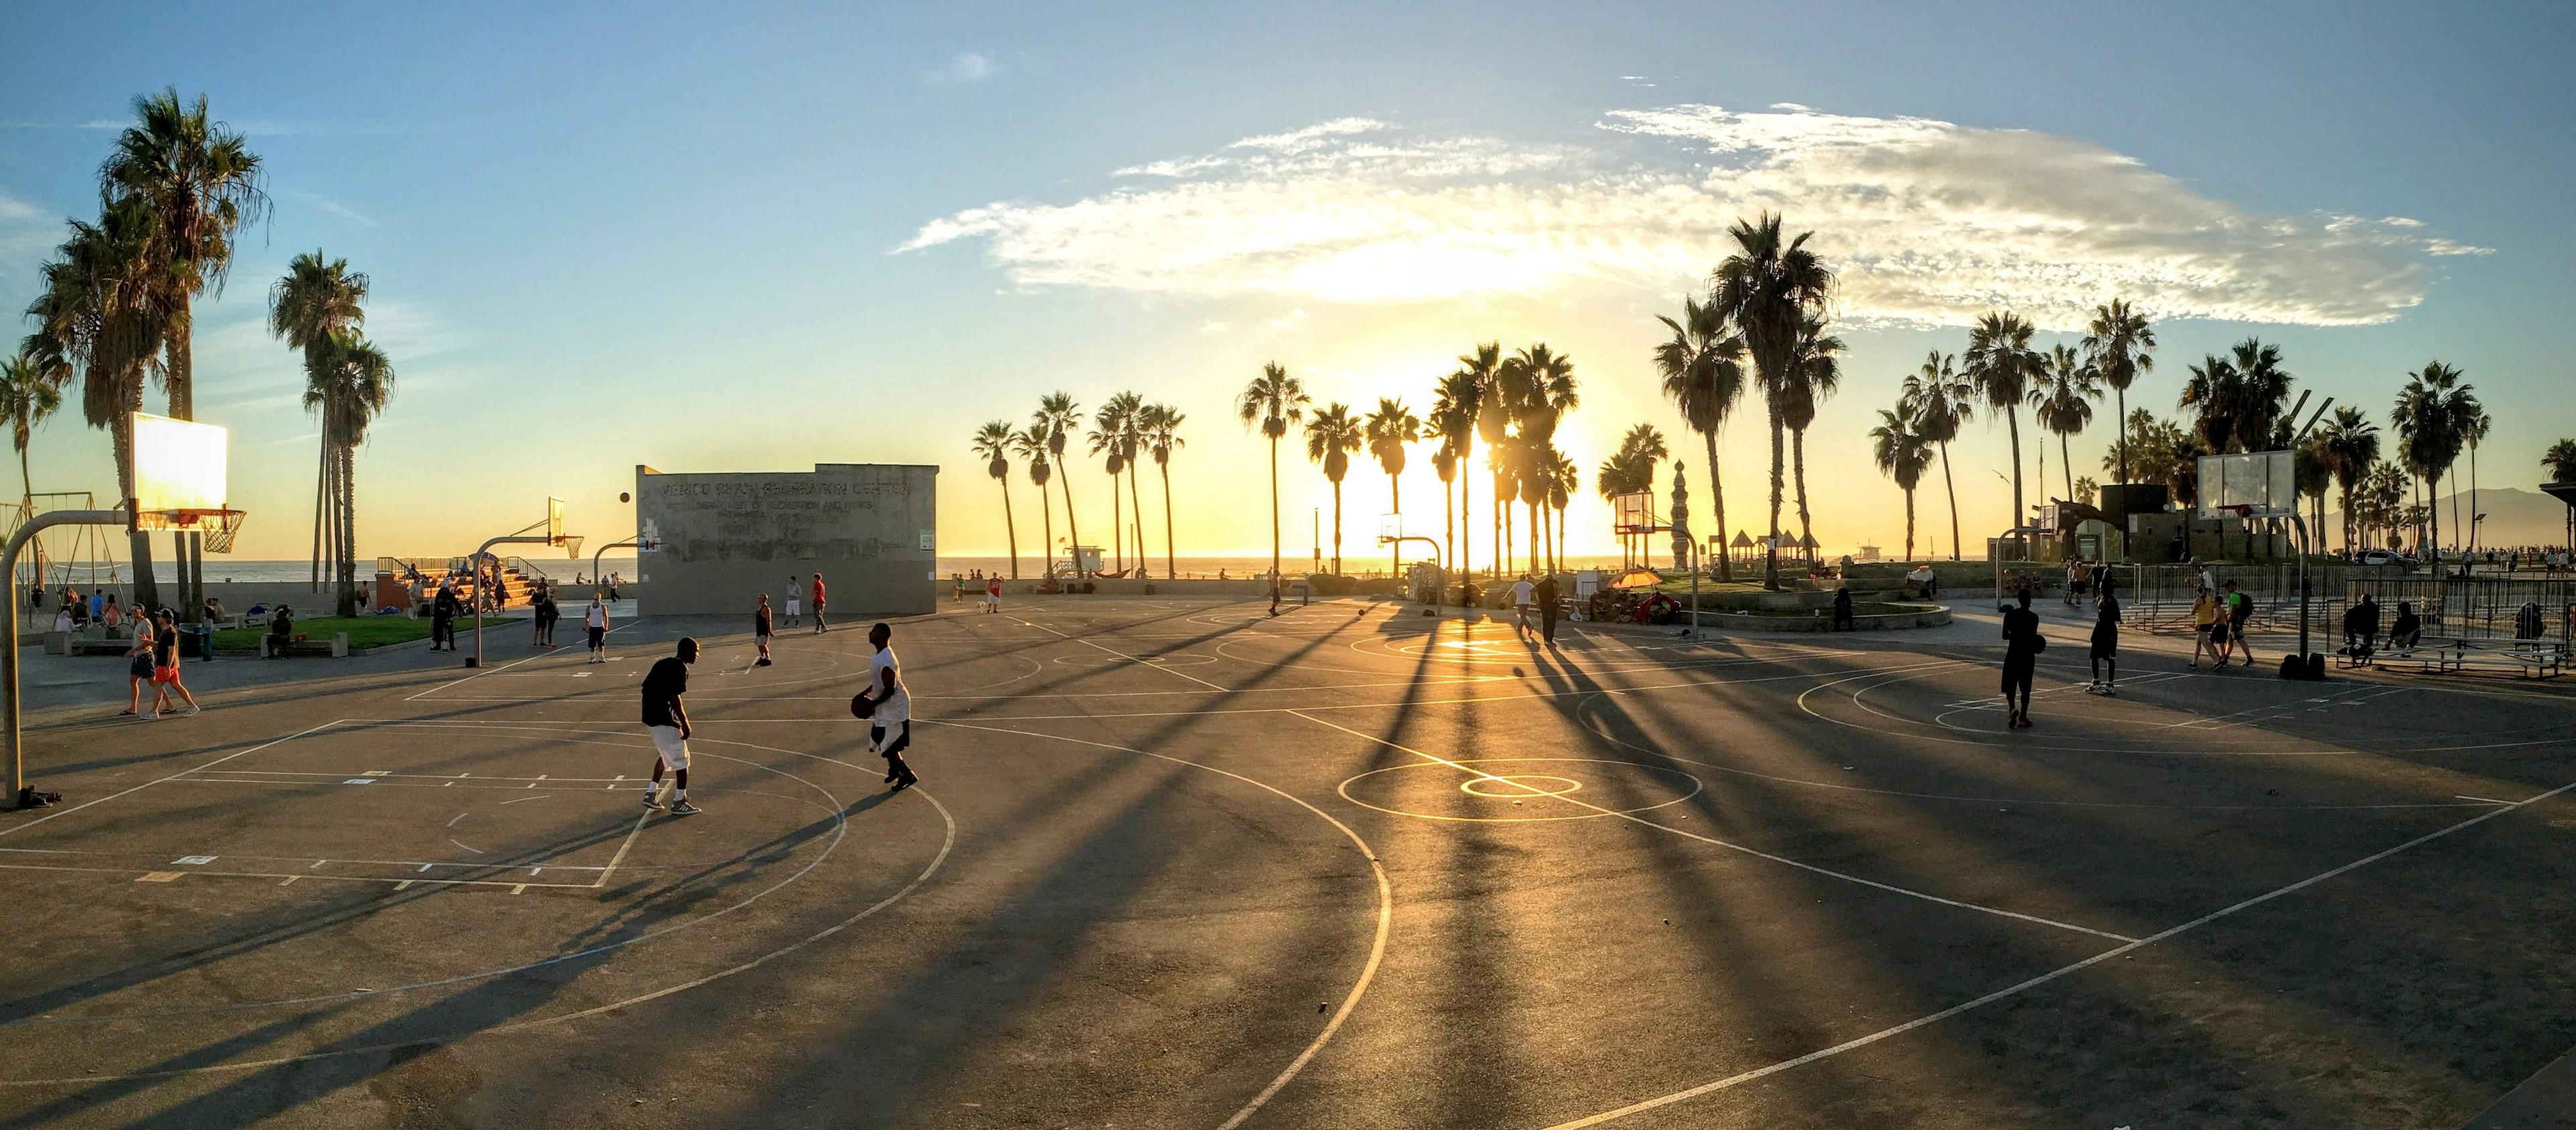 Venice Beach California Wallpaper 67 images 3840x1685